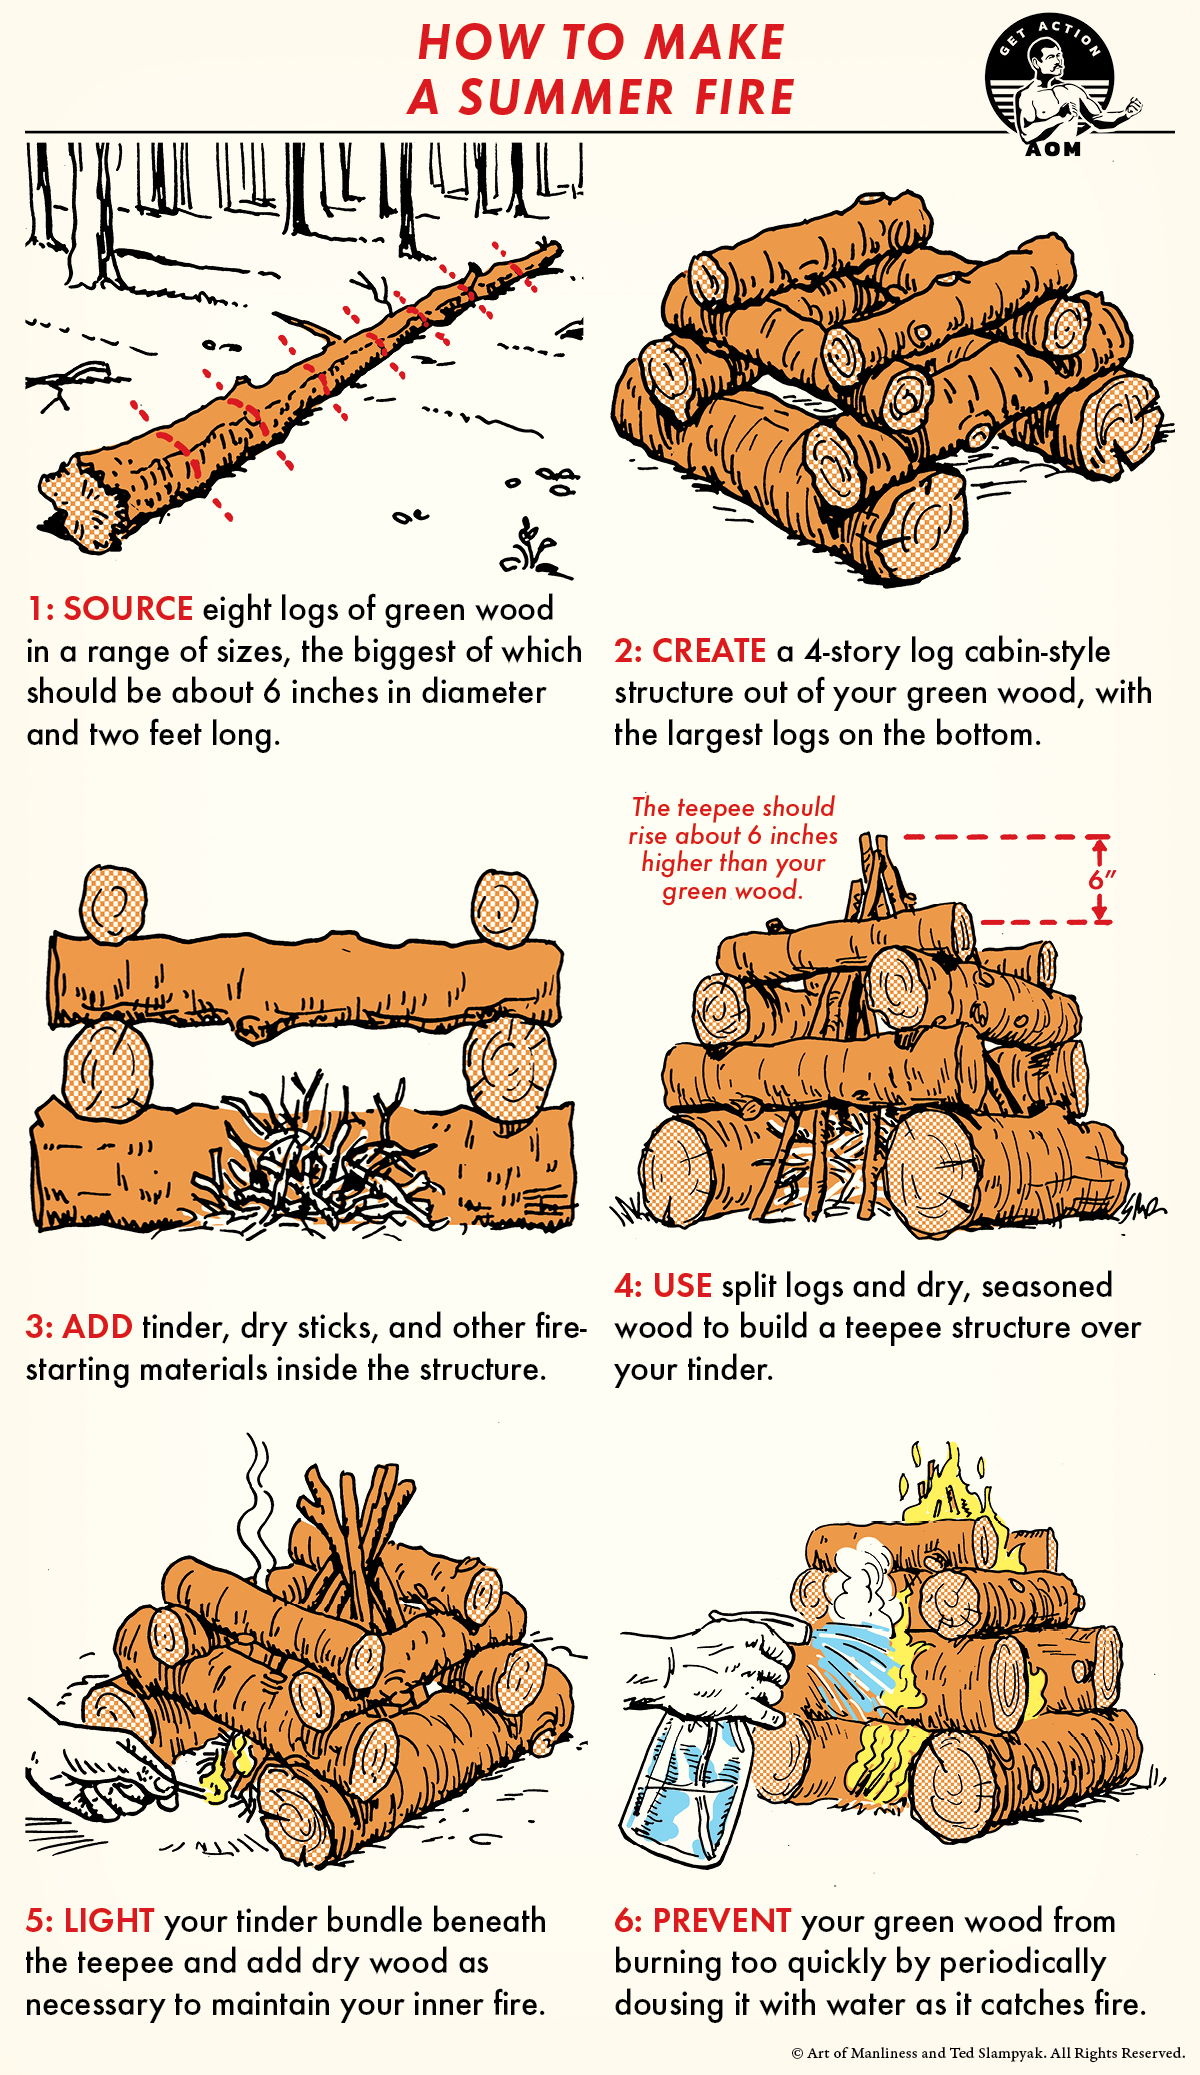 How To Build A Summer Fire  The Art Of Manliness-4806